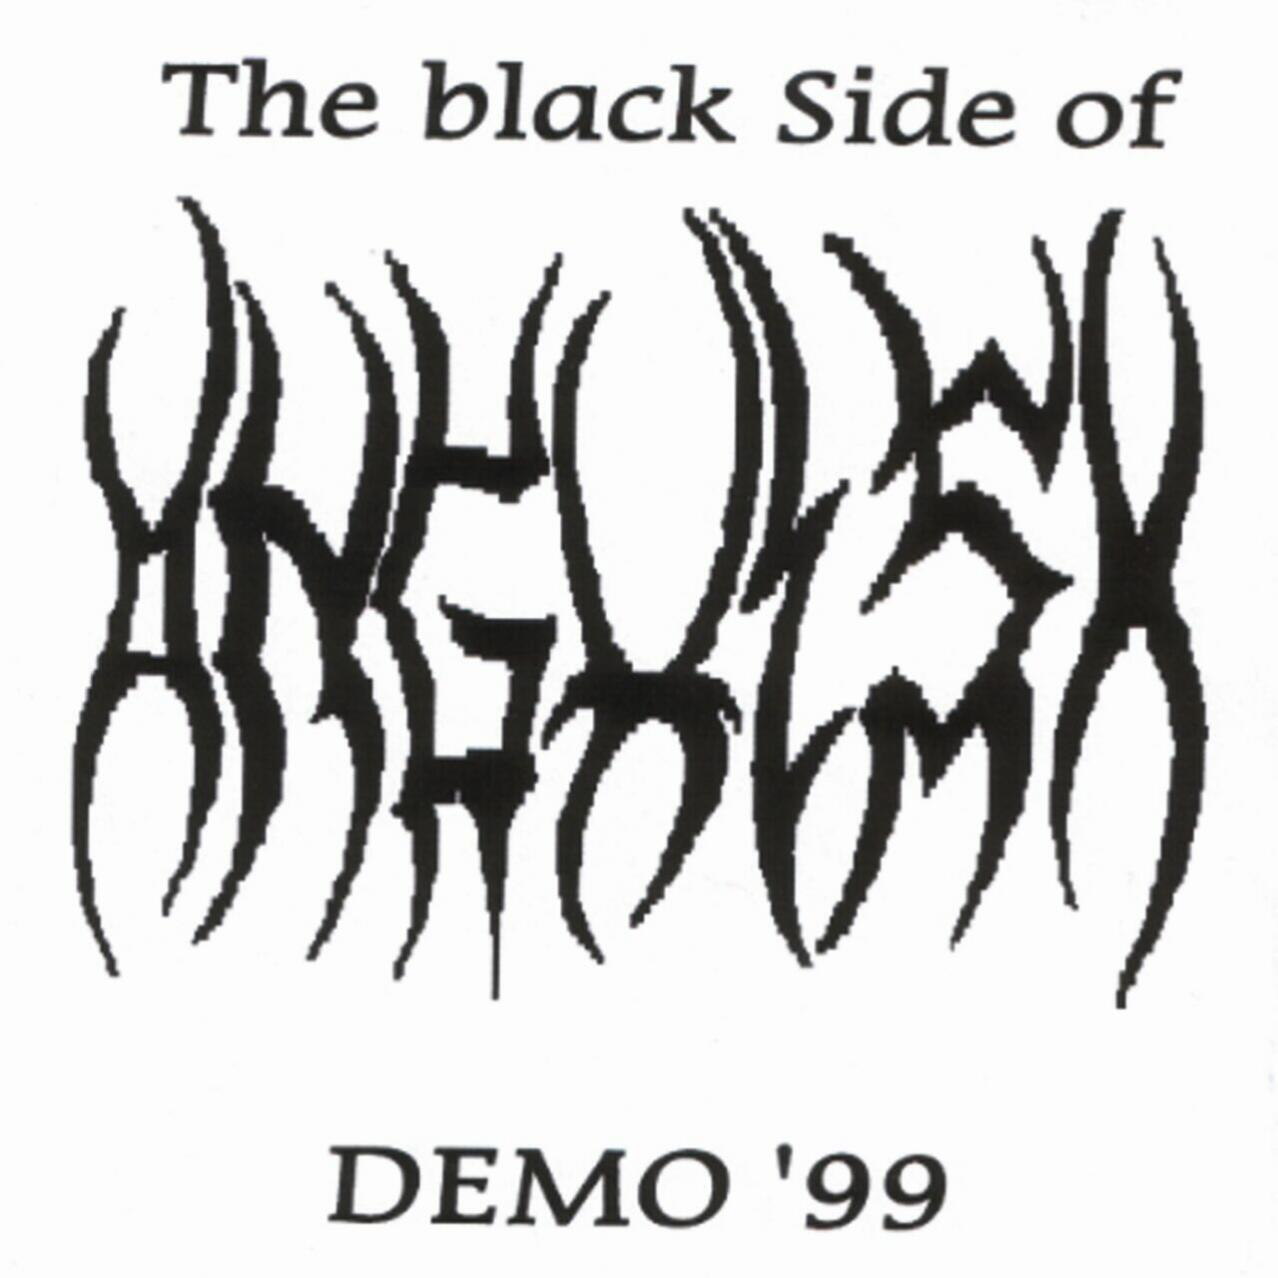 The black side of Anguish Demo 99 - The black side of Anguish - Demo '99 - demos